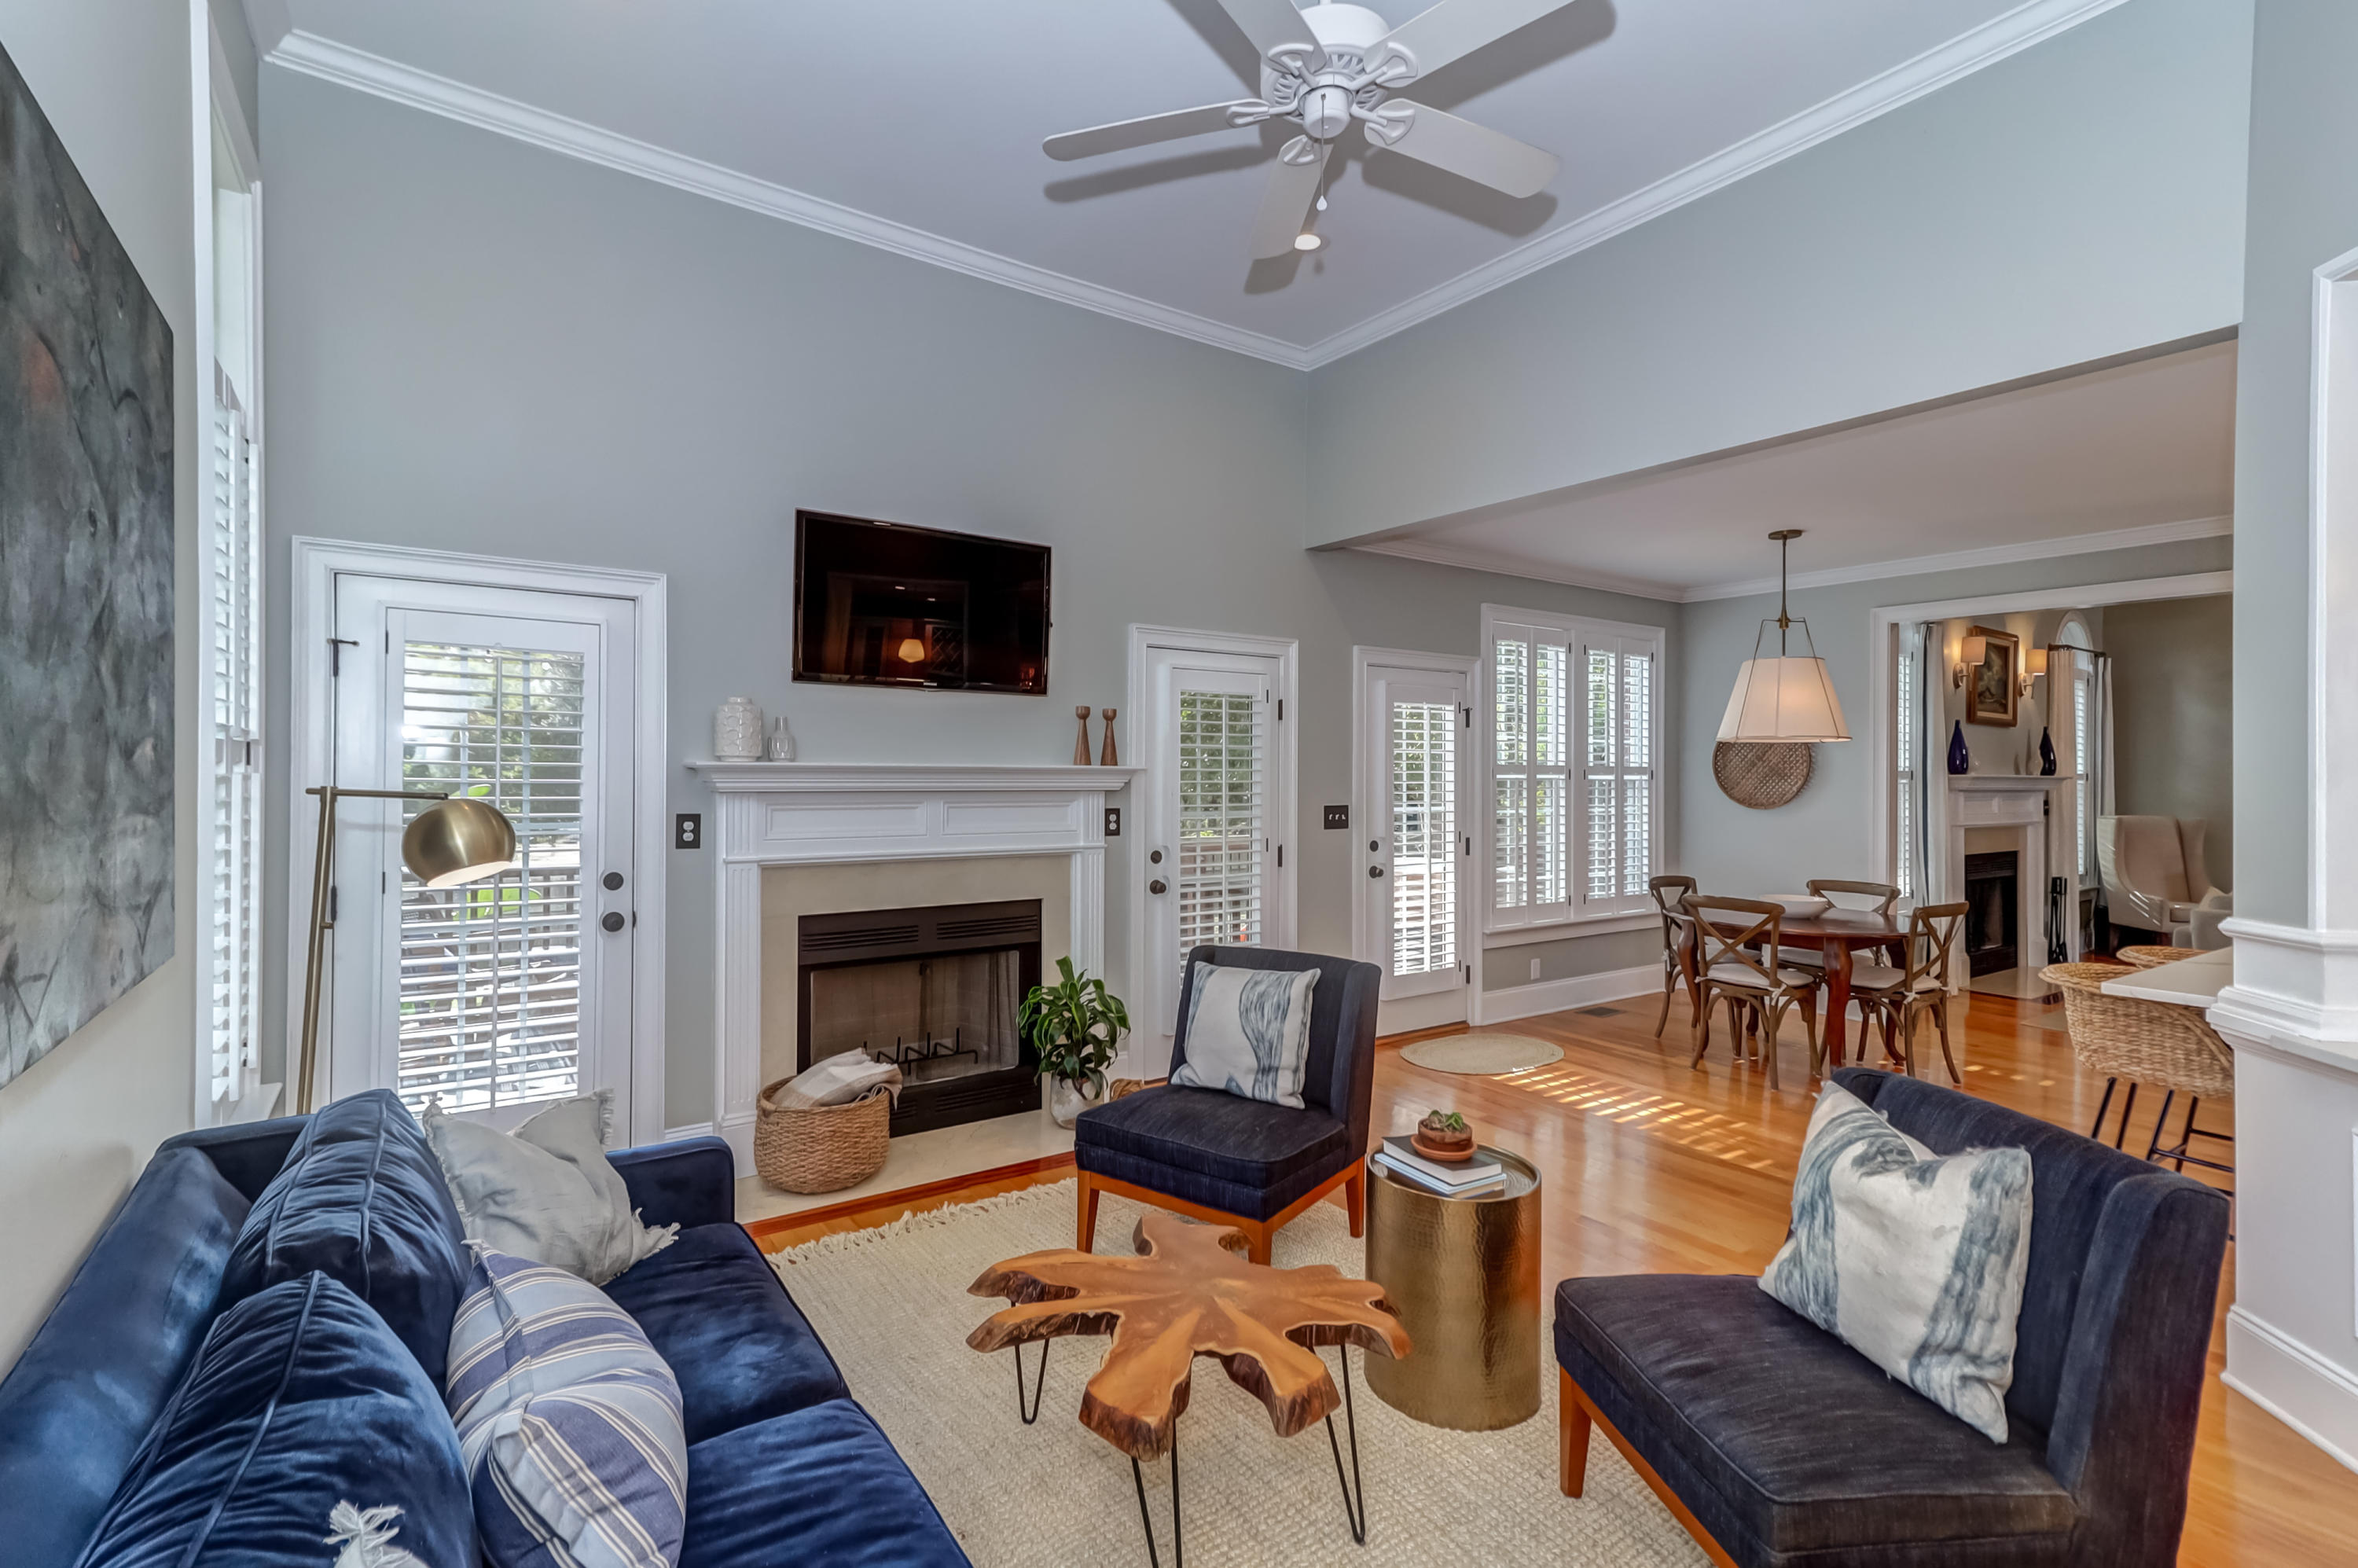 Woodward Pointe Homes For Sale - 657 White Chapel, Charleston, SC - 42